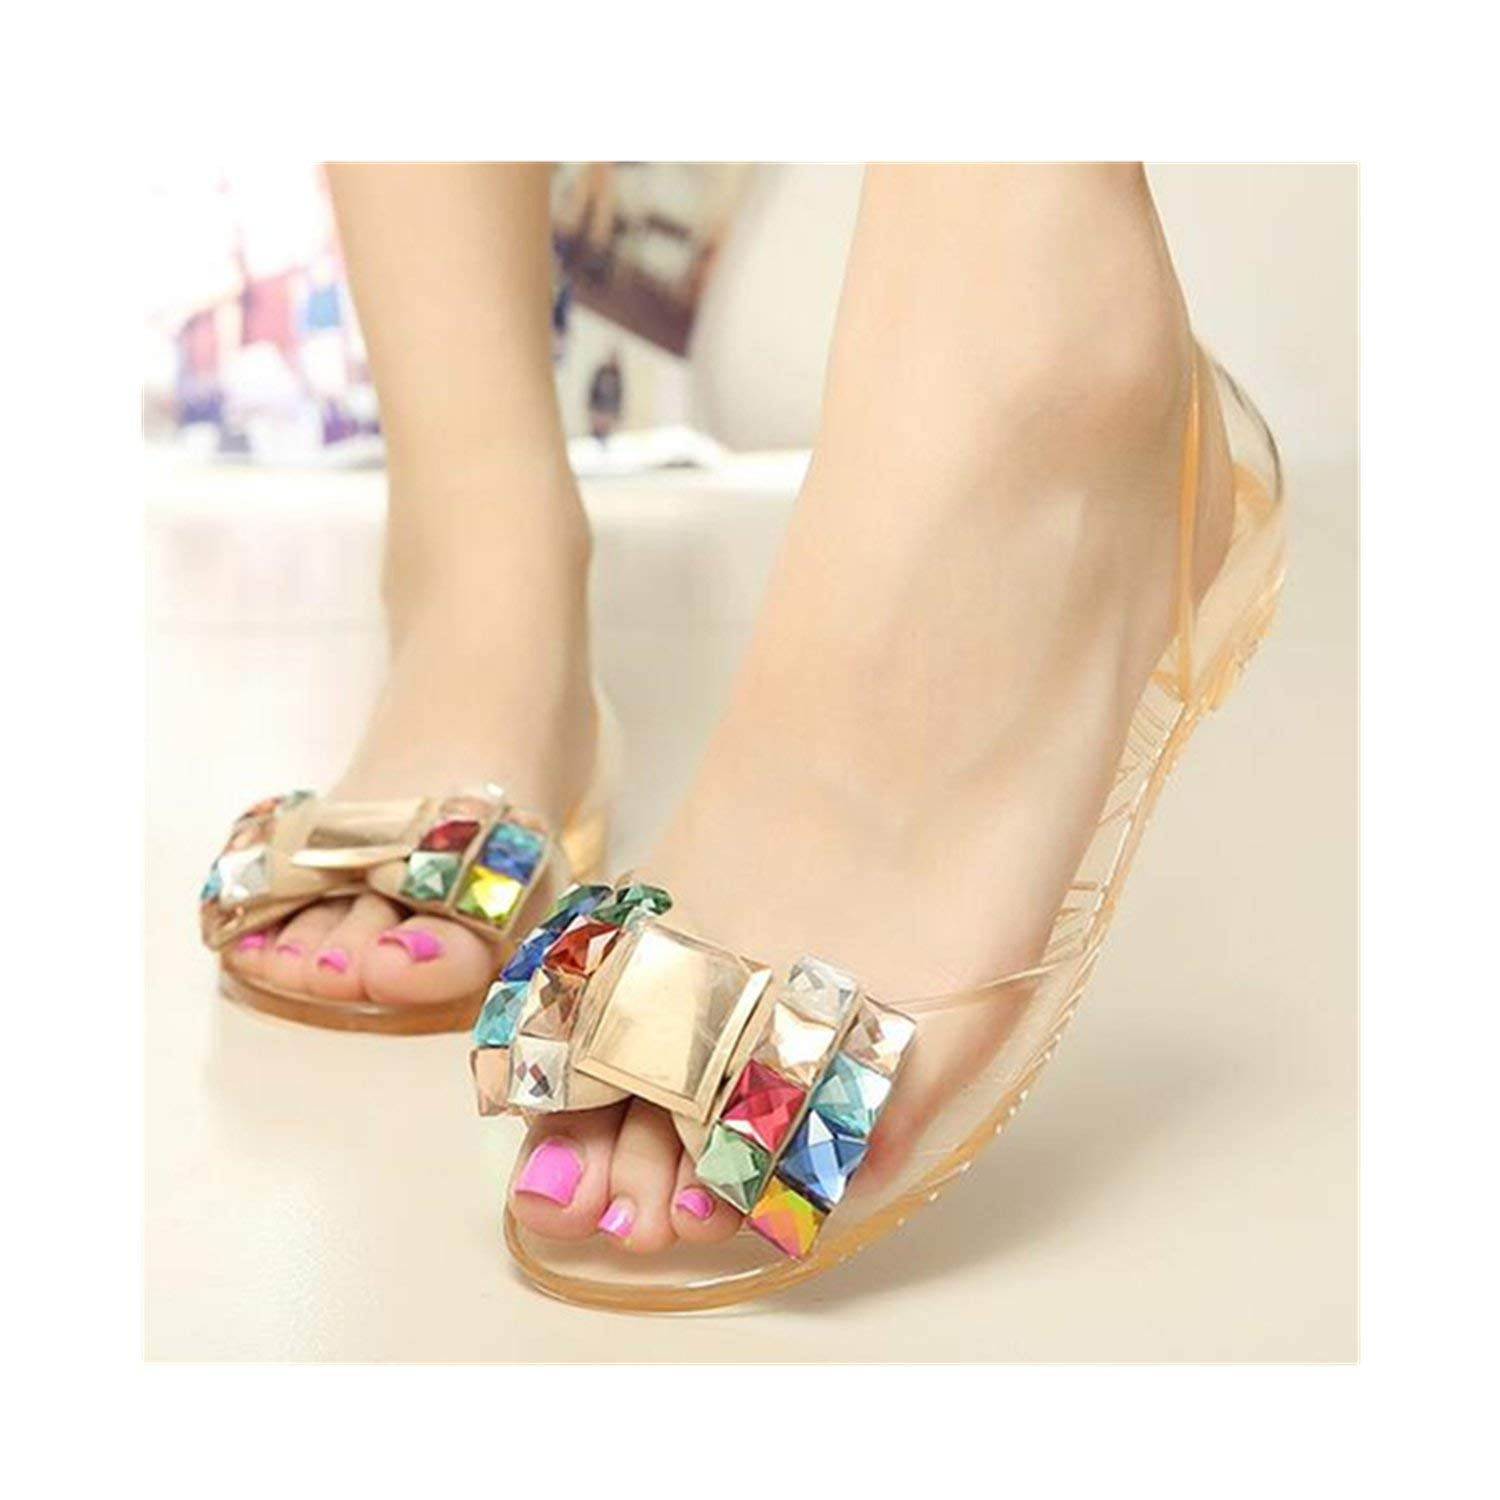 c1d3ca2dbcc4 Get Quotations · Saneoo Women Sandals Summer Style Bling Bowtie Jelly Shoes  Woman Casual Peep Toe Sandal Crystal Flat